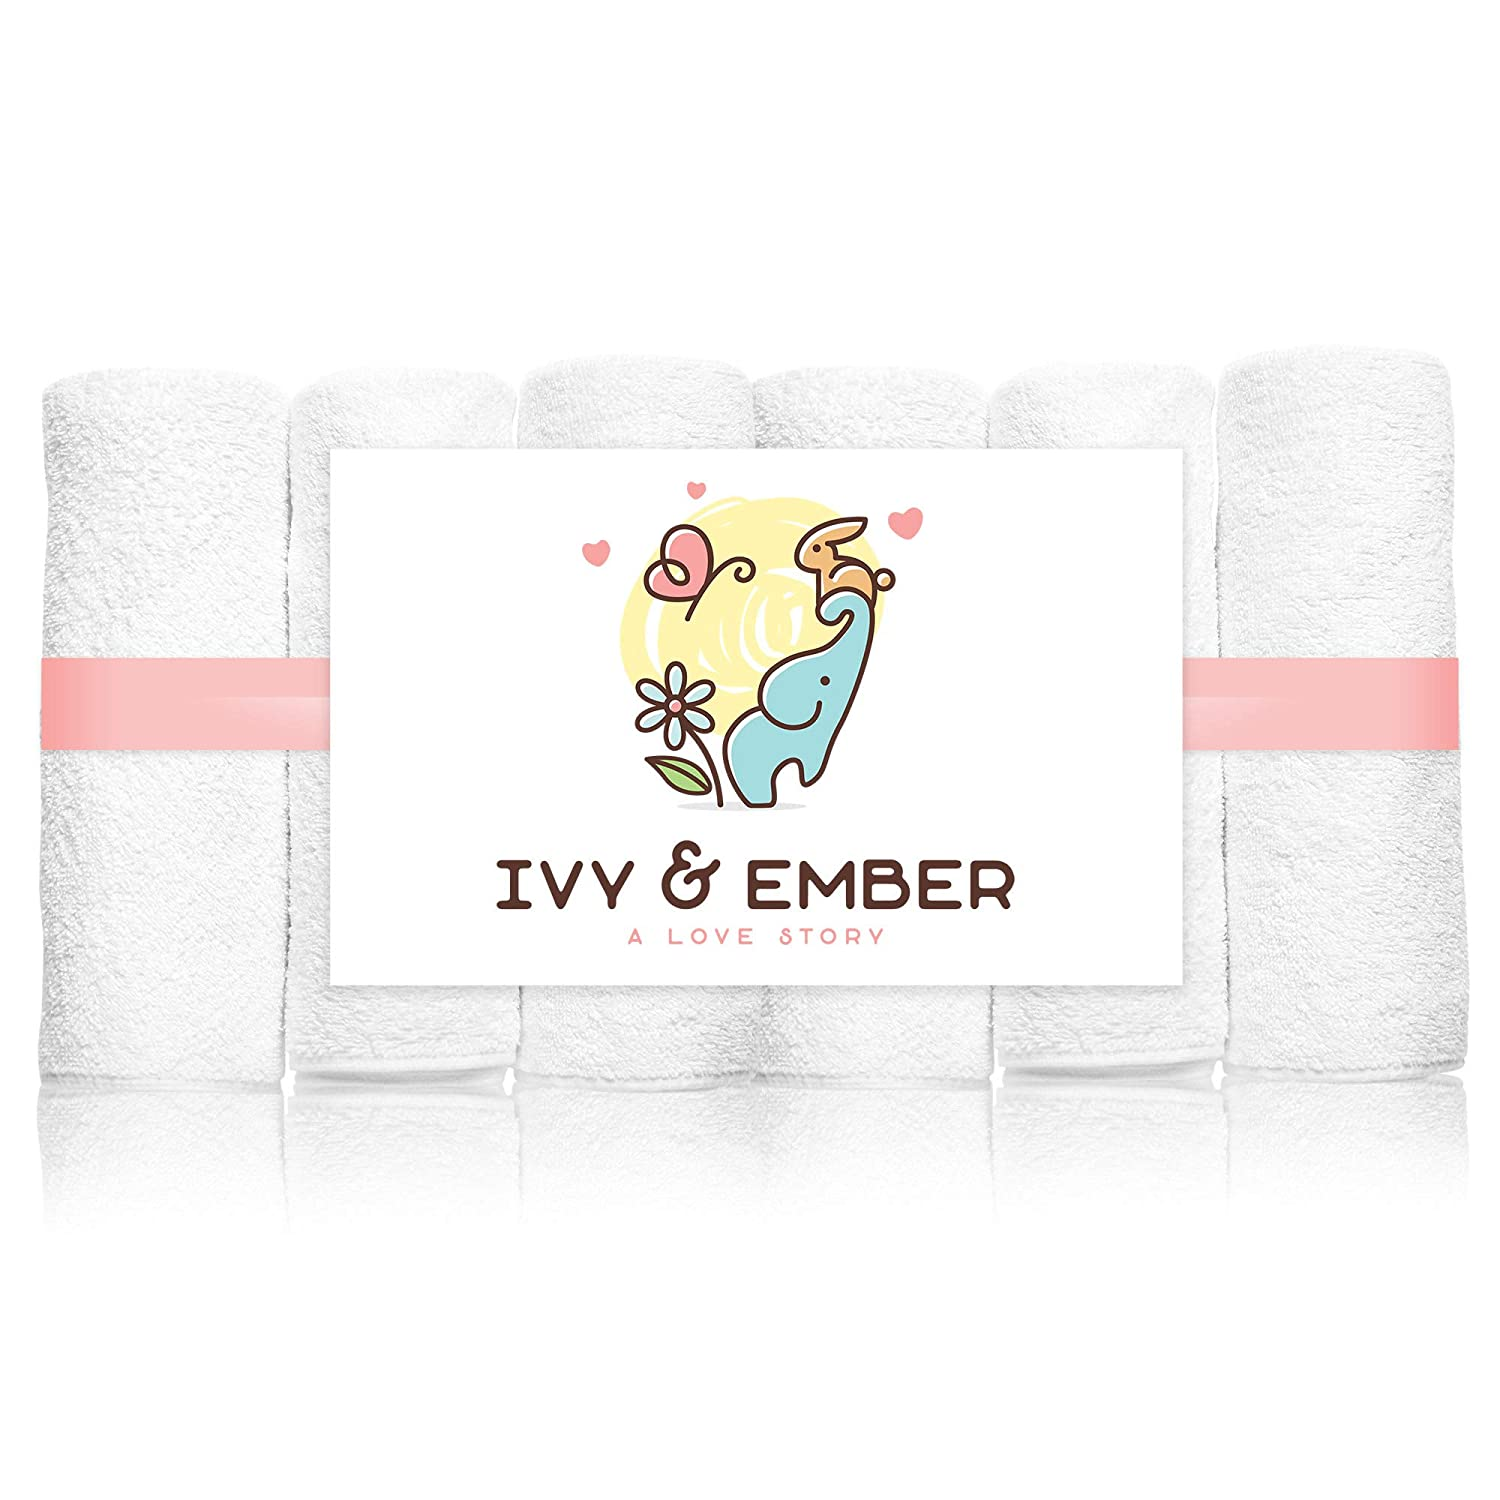 Bamboo Baby Washcloths - 100% Organic Soft Wash Cloths - Shower Registry Top 10 Must Have Gifts List - Spa & Hotel Luxury White Hand & Face Towels - Babies Wipes - Free Bonus Delicates Bag Ivy & Ember